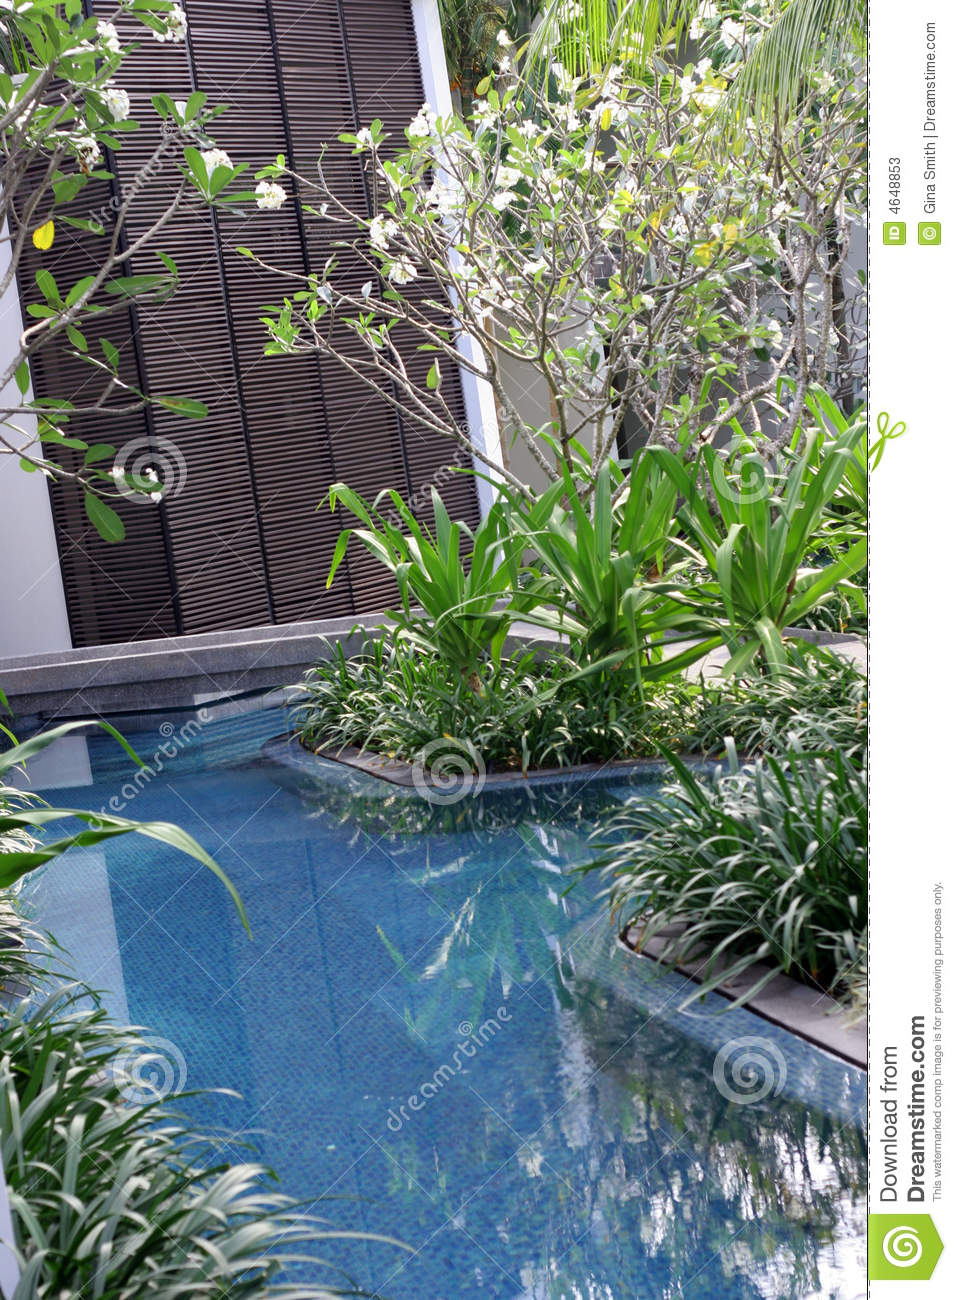 Swimming pool area stock photos image 4648853 - Swimming pool area ...